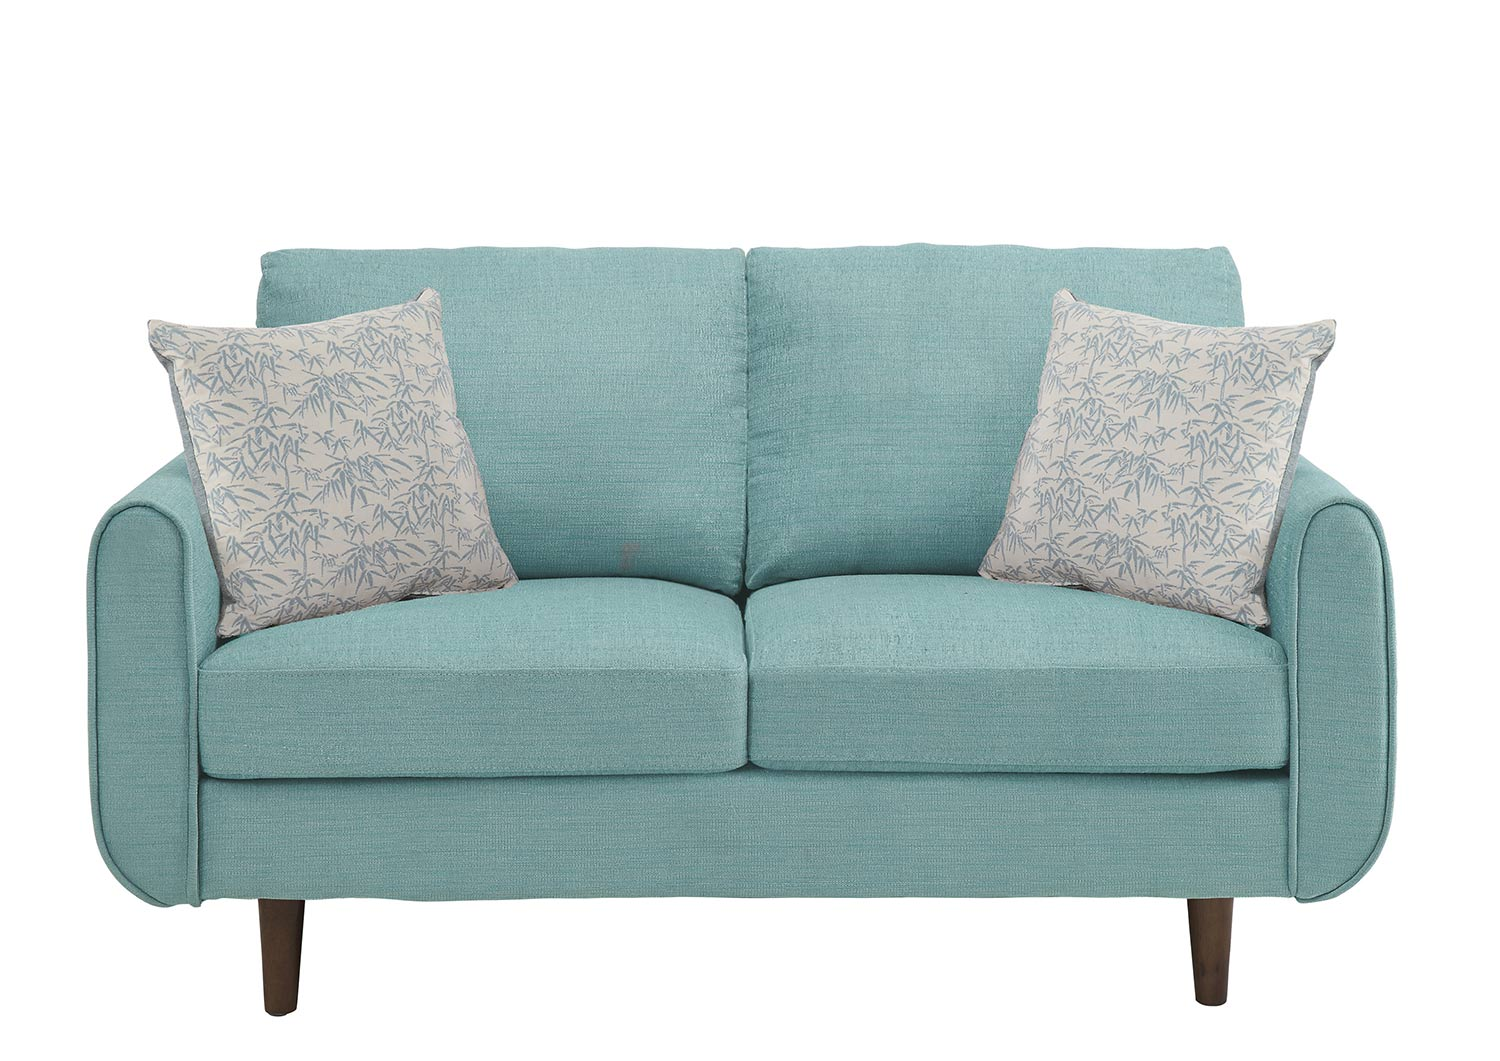 Homelegance Wrasse Love Seat - Teal